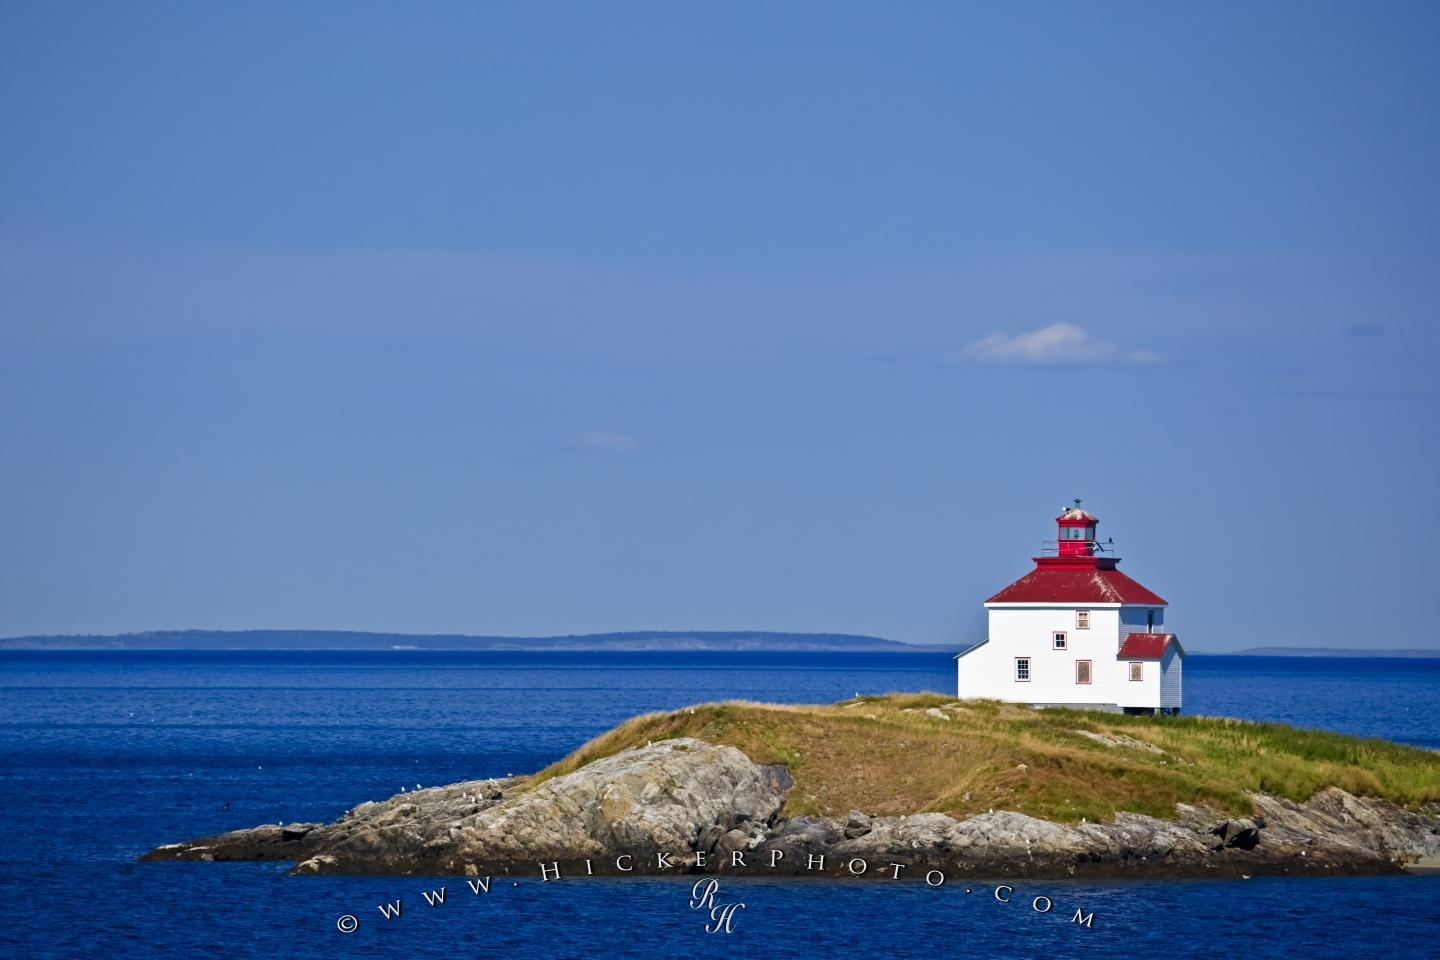 wallpaper background Queensport Lighthouse Chedabucto Bay Nova Scotia 1440x960